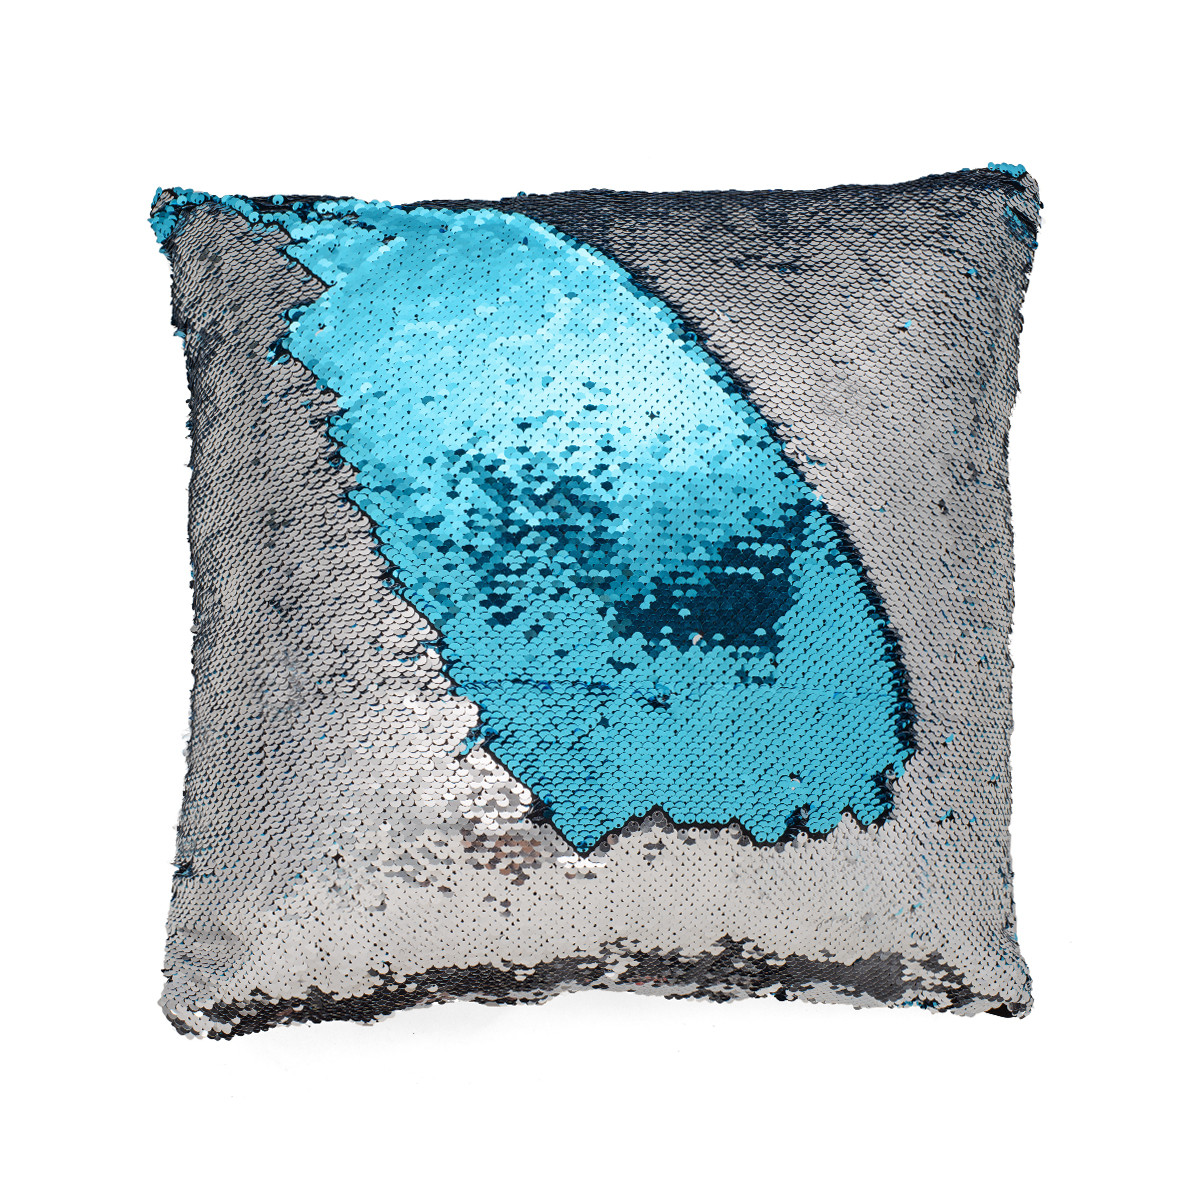 blue silver mermaid pillow mermaid pillows. Black Bedroom Furniture Sets. Home Design Ideas